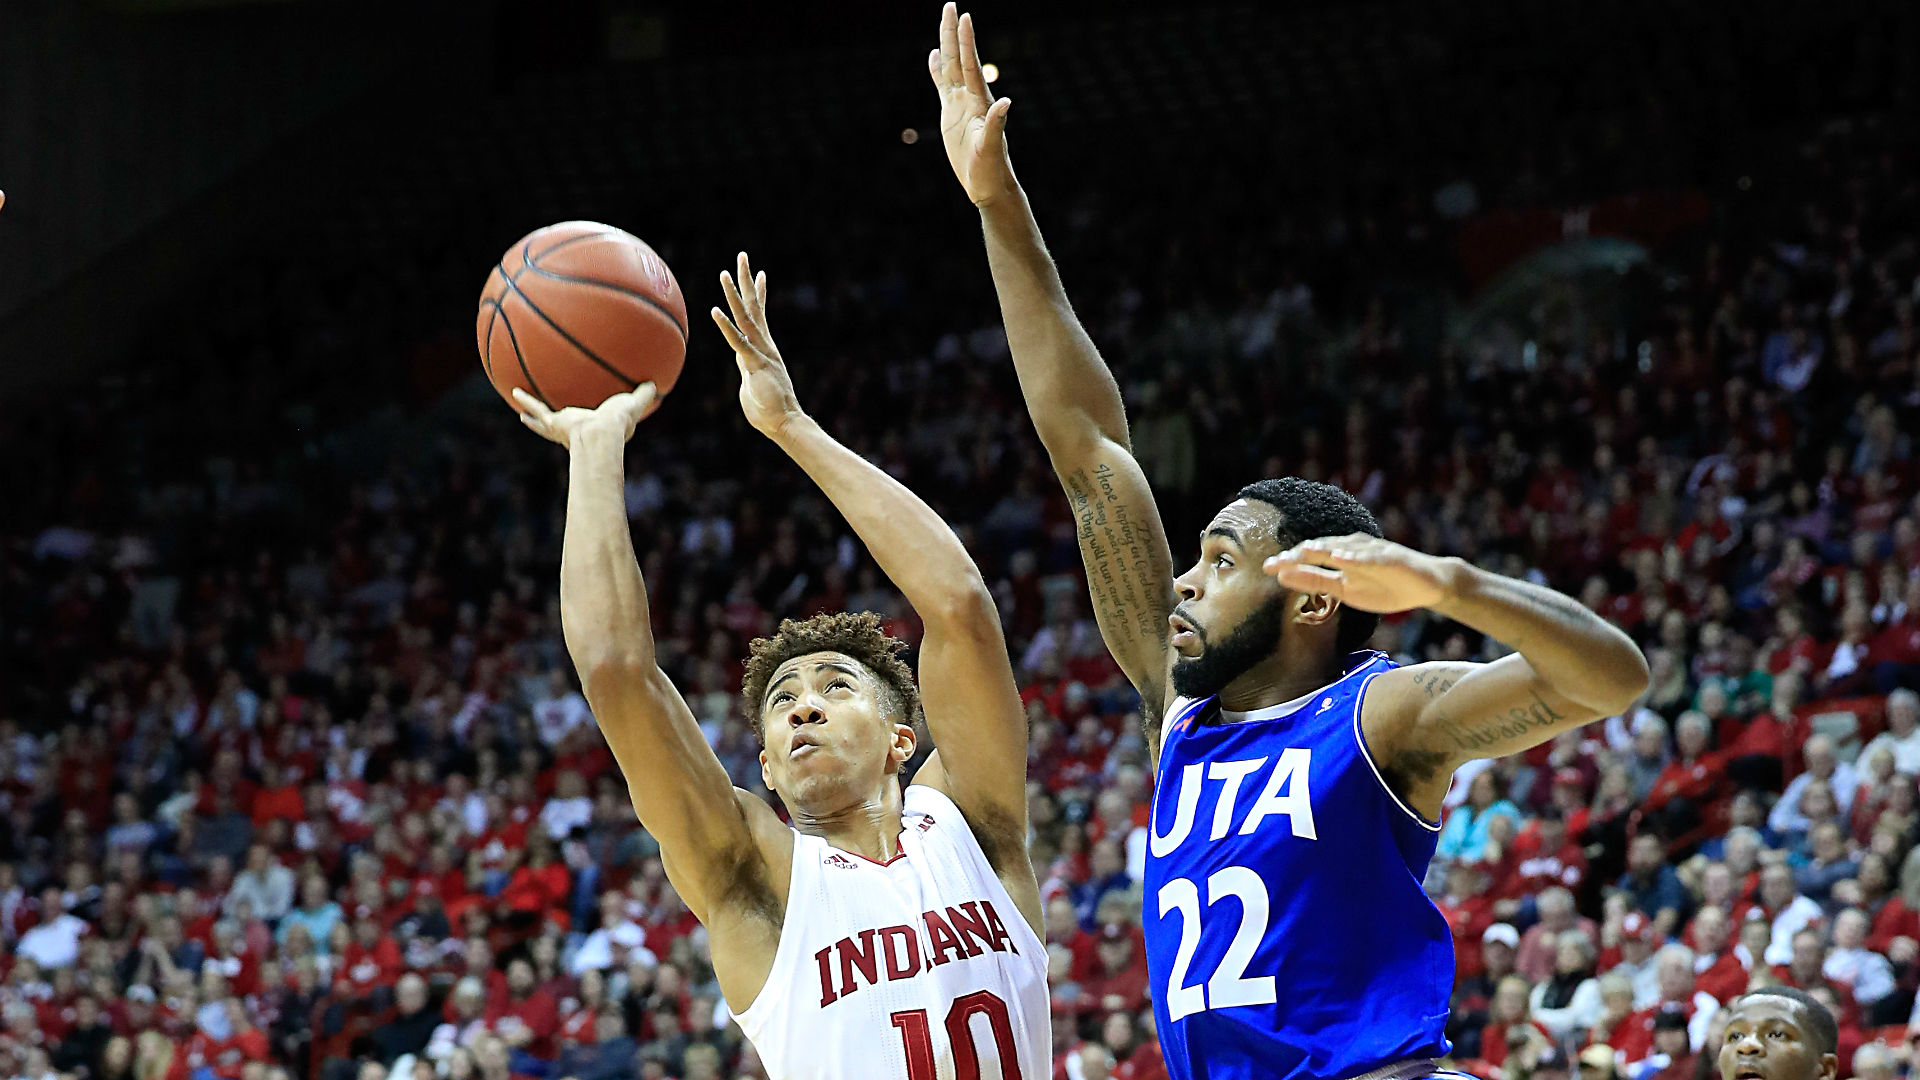 Indiana Freshman Rob Phinisee Sinks Game-Winning Three to Beat Butler